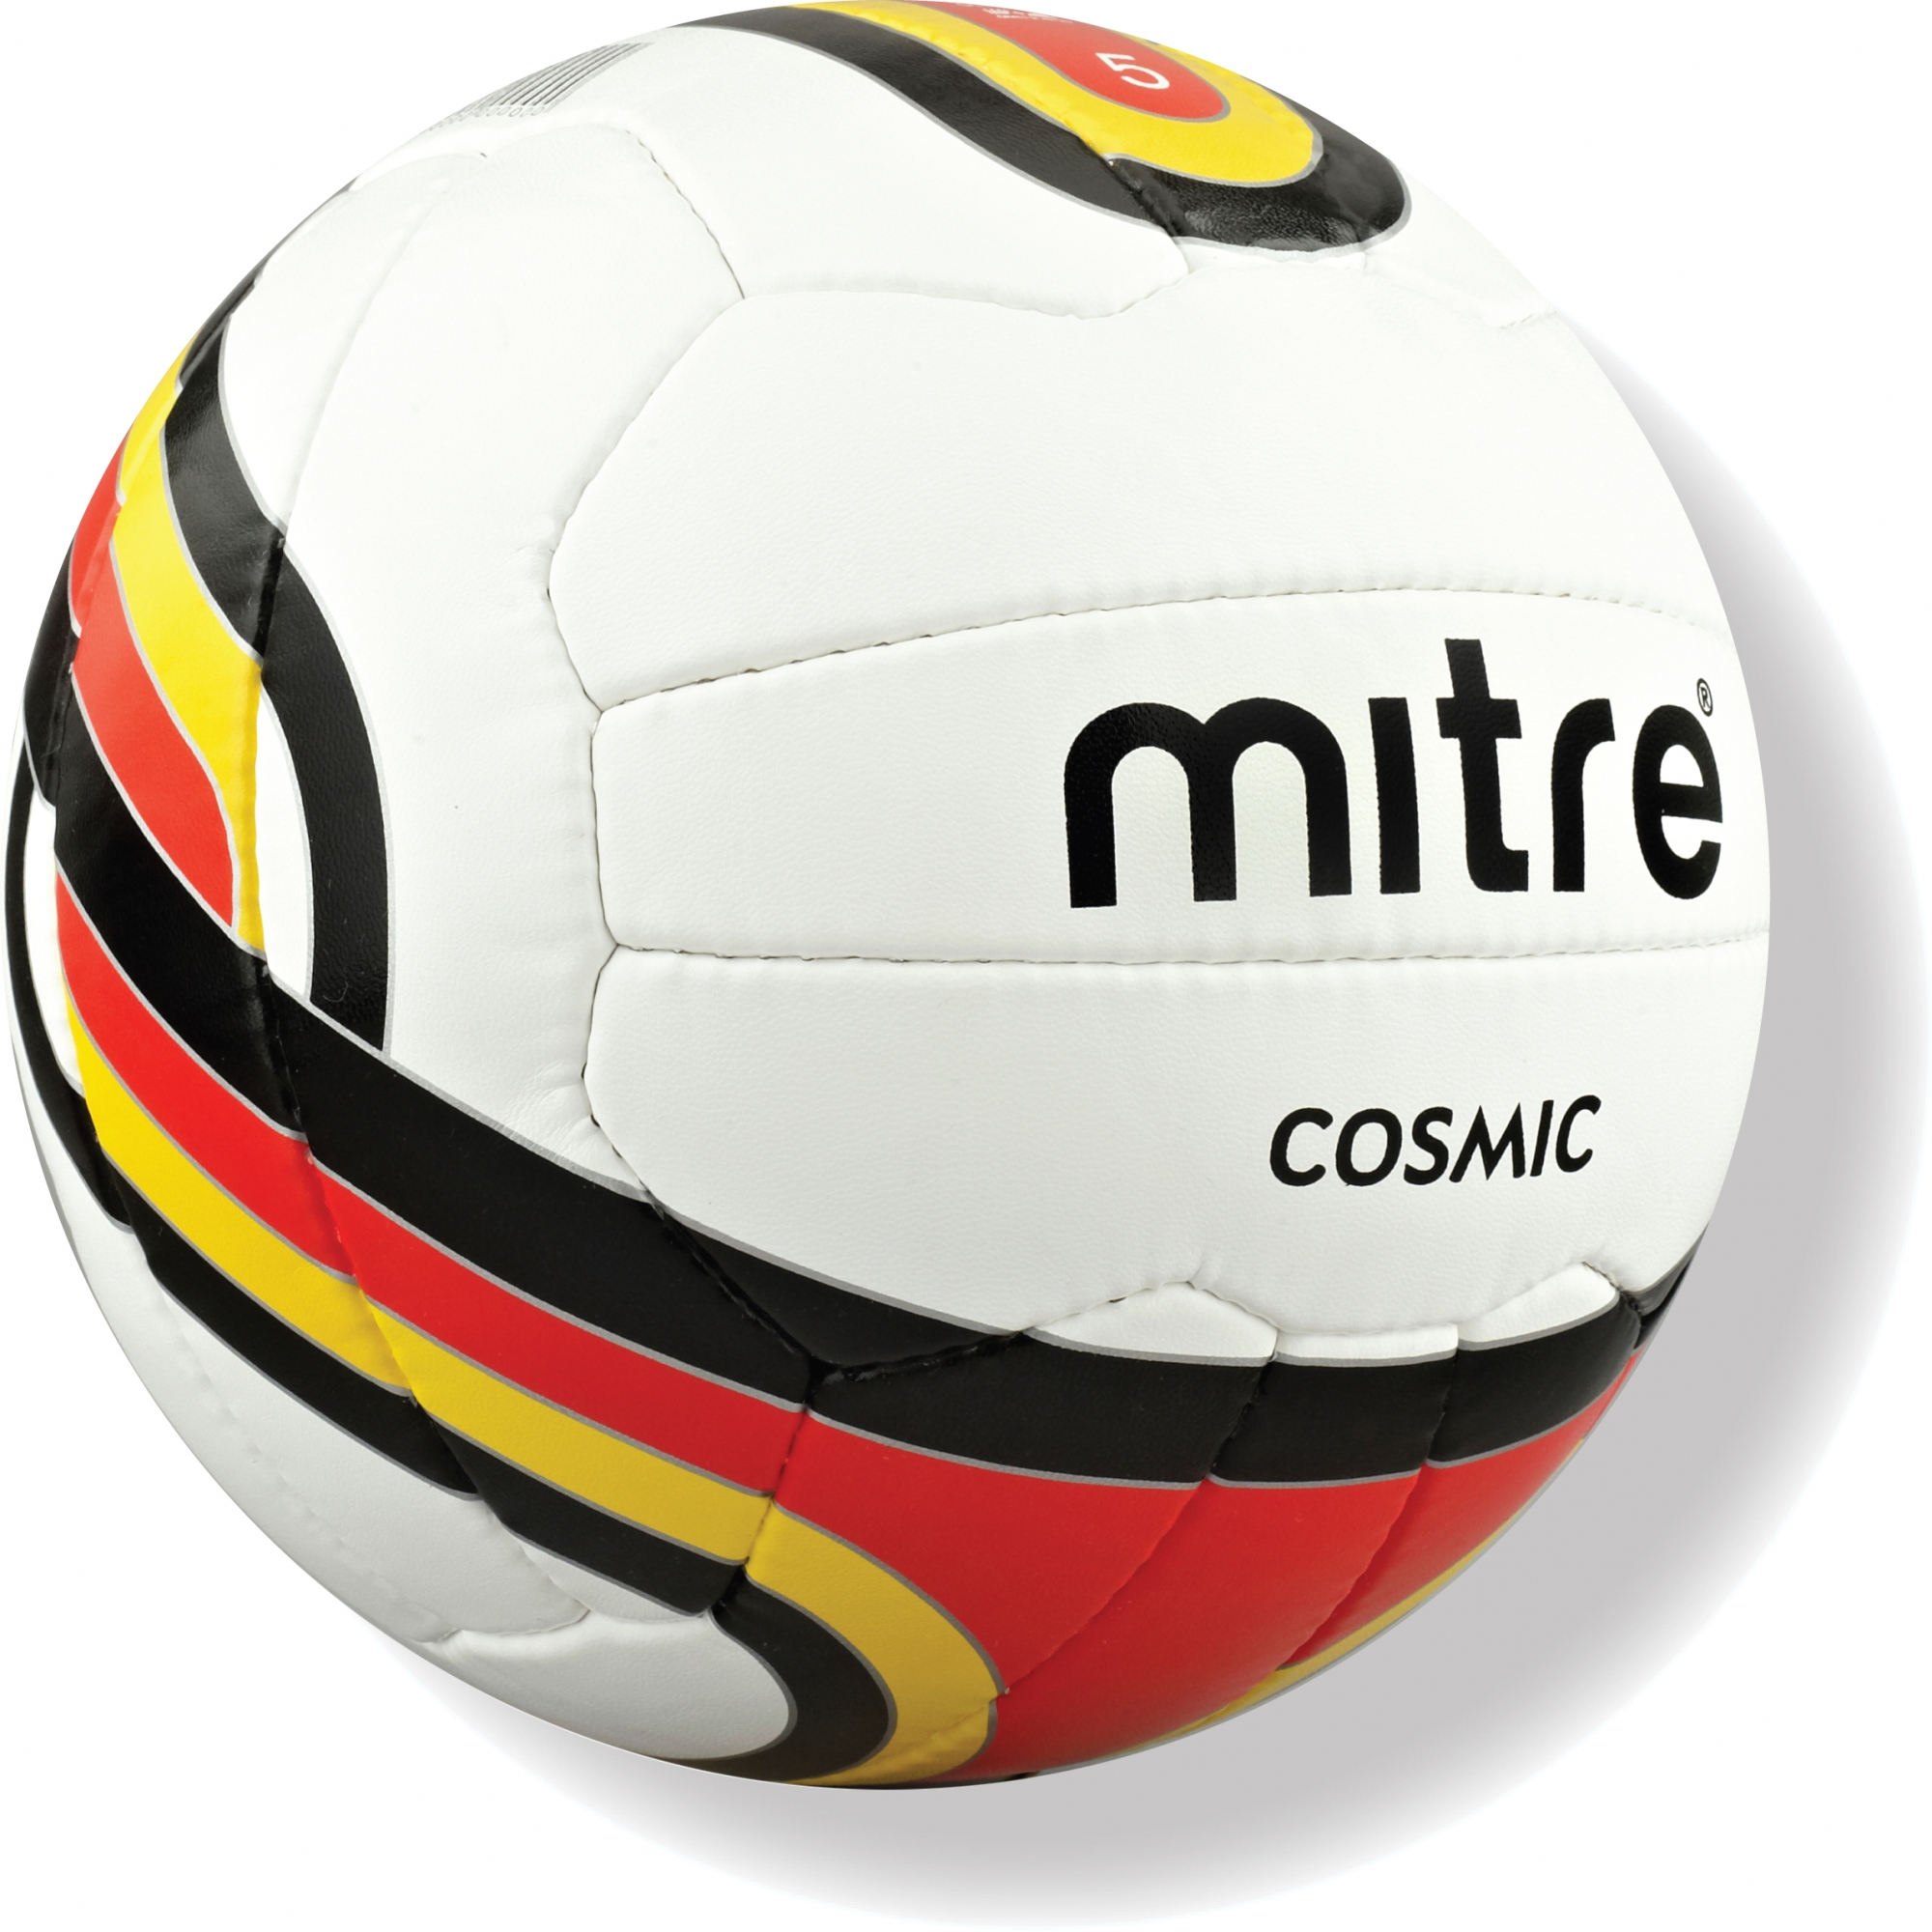 Brand-New-Mitre-Cosmic-Training-Football-Official-Size-3-4-5-Ball